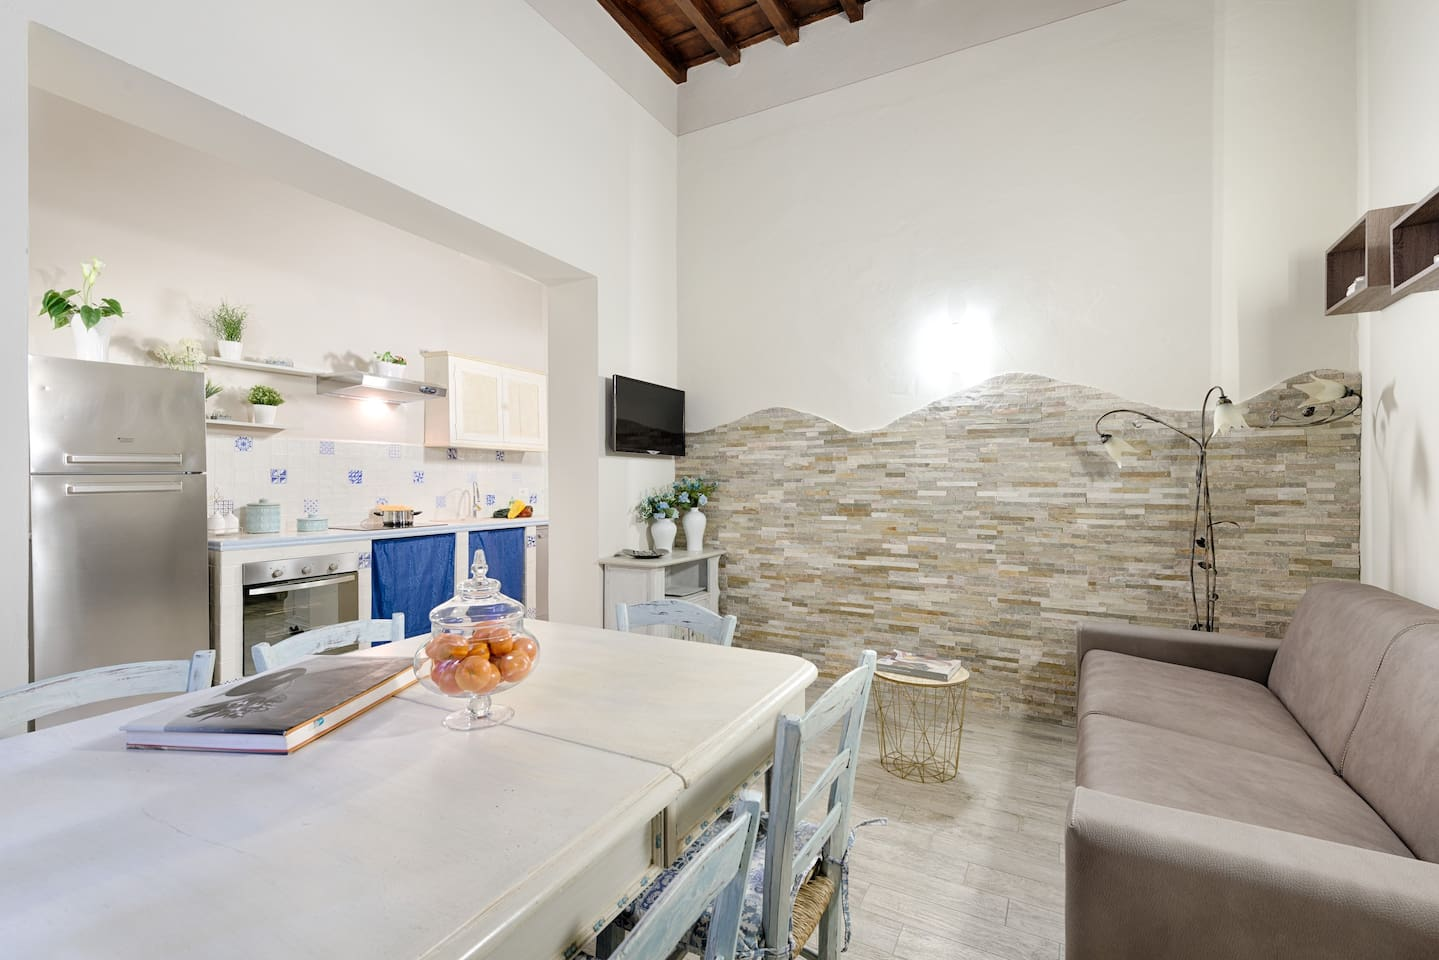 Santa Croce Cathedral - Apartments for Rent in Florence, Toscana, Italy